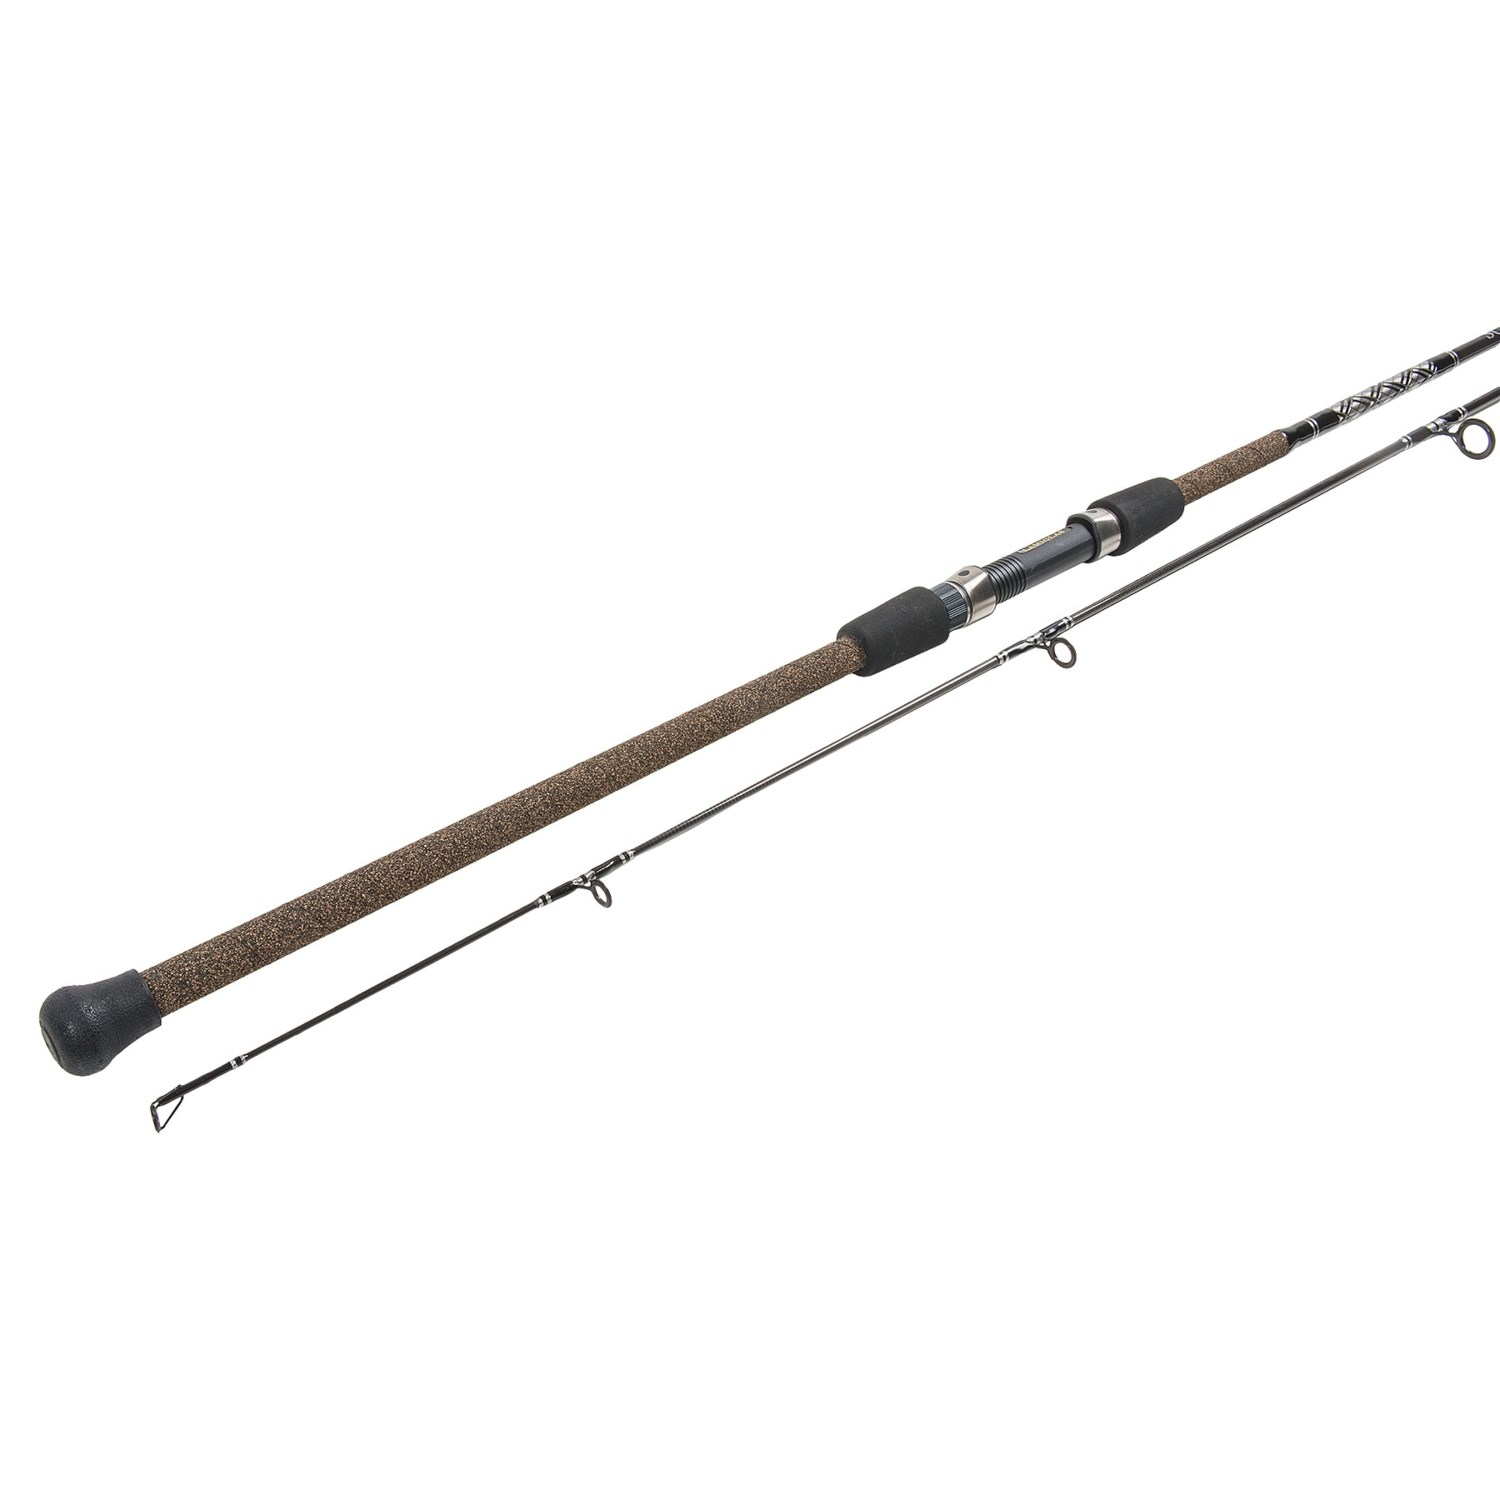 Lamiglas surf king spinning rod 9 2 piece 6826y save 26 for 2 piece fishing rod